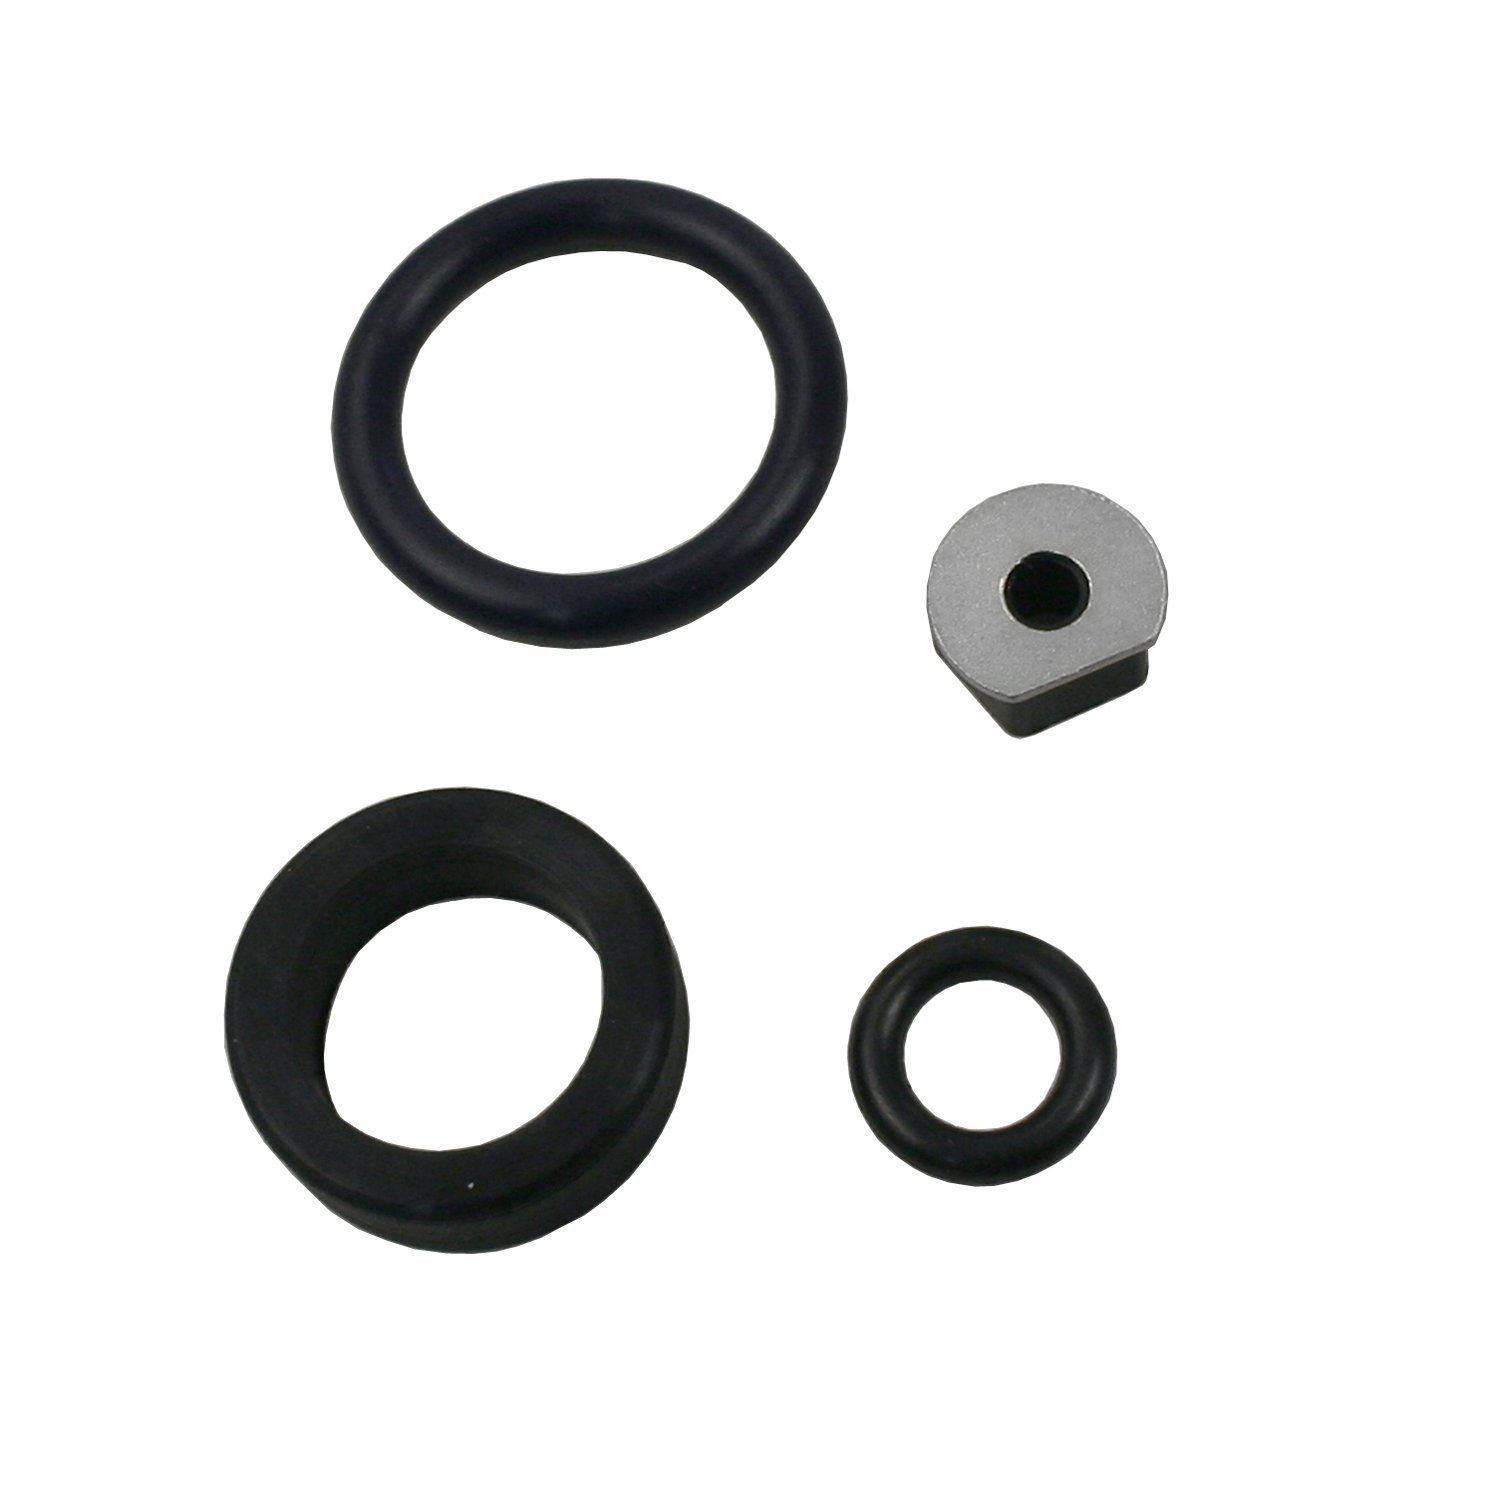 Beck Arnley 158-0957 Fuel Injection O-Ring Kit